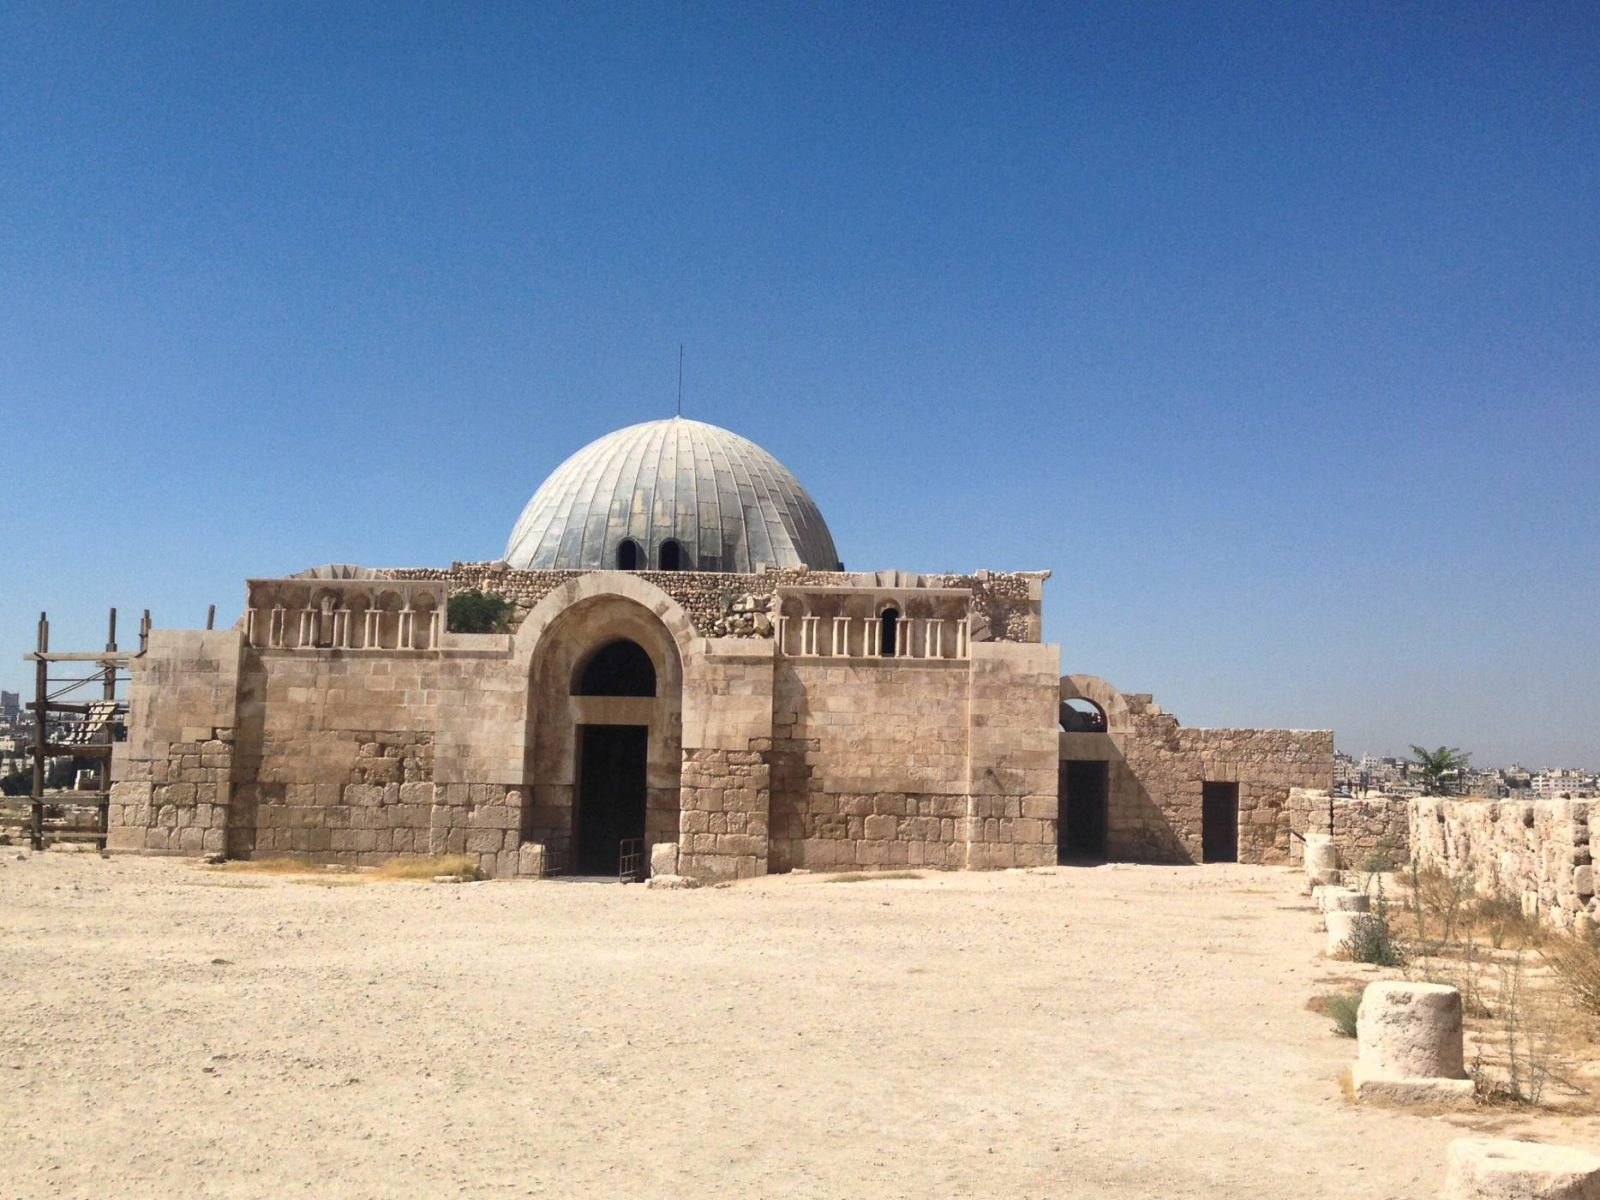 Sightseeing Sunday: Exploring the Hashemite Kingdom of Jordan